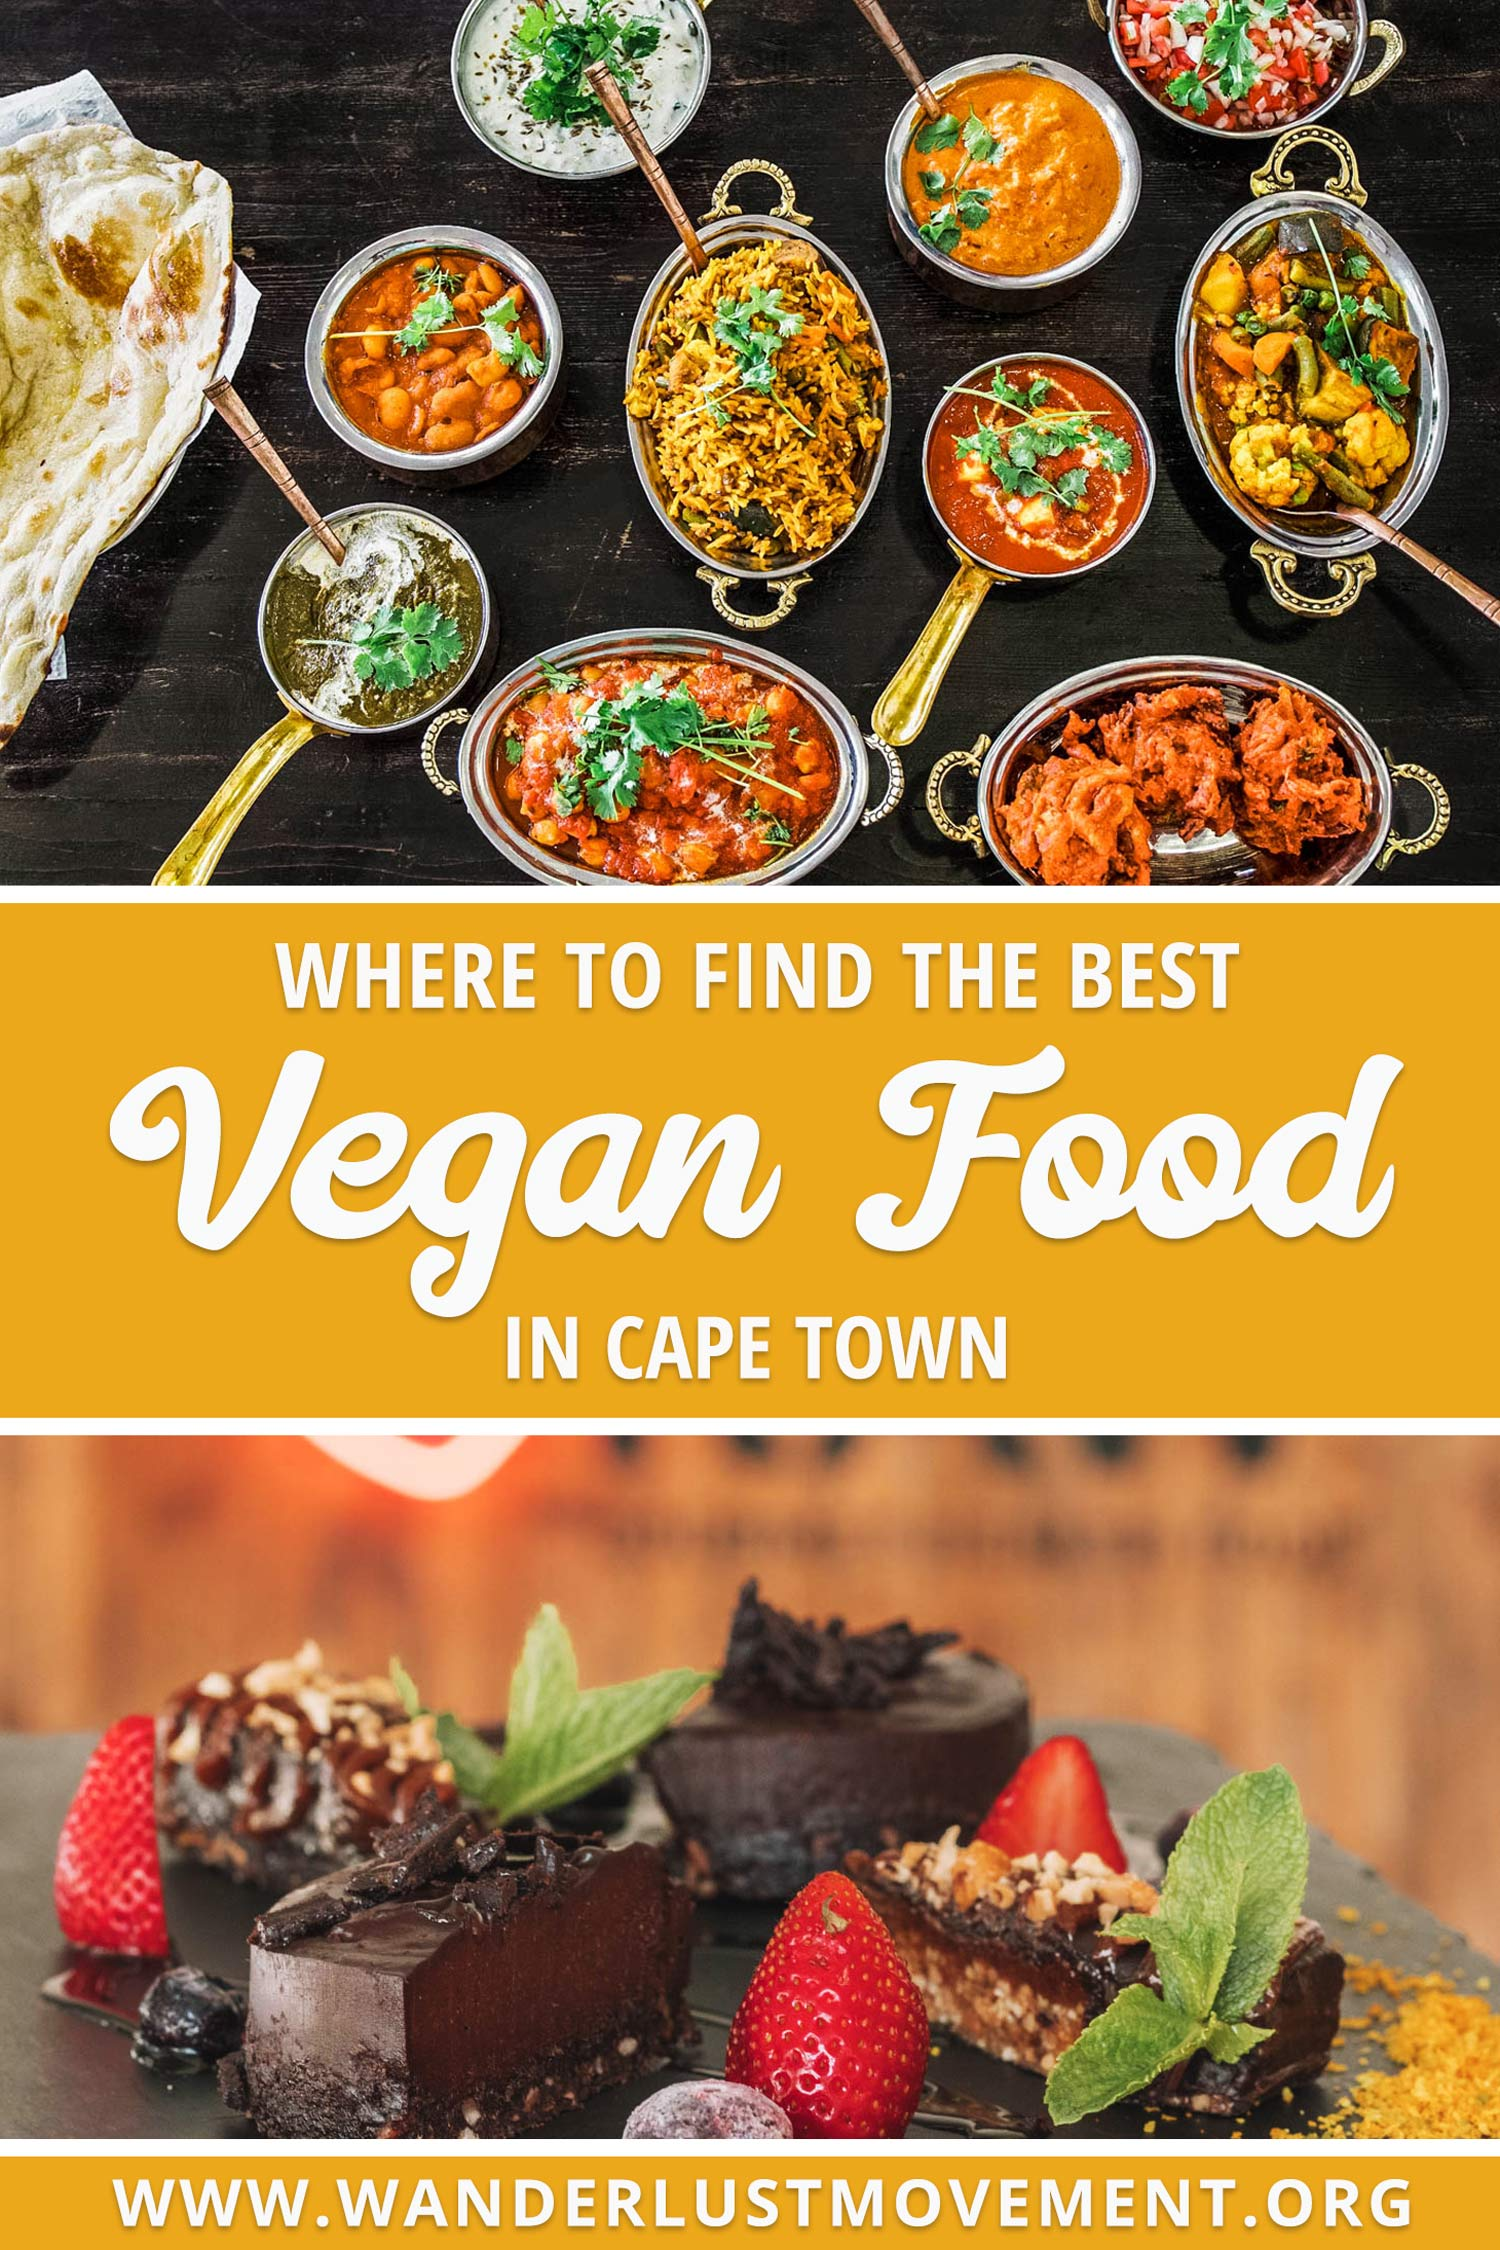 Cape Town is South Africa's vegan foodie mecca. The city is full of delicious plant-based restaurants, eateries and cafes. In fact, you'll be hard-pressed to find a menu that doesn't have at least one option for hungry vegans. Here are the best vegan restaurants in Cape Town! | Cape Town Travel Tips | South Africa Travel Tips | Vegan Travel | Vegan Restaurants | #southafrica #capetown #veganfood #vegantravel